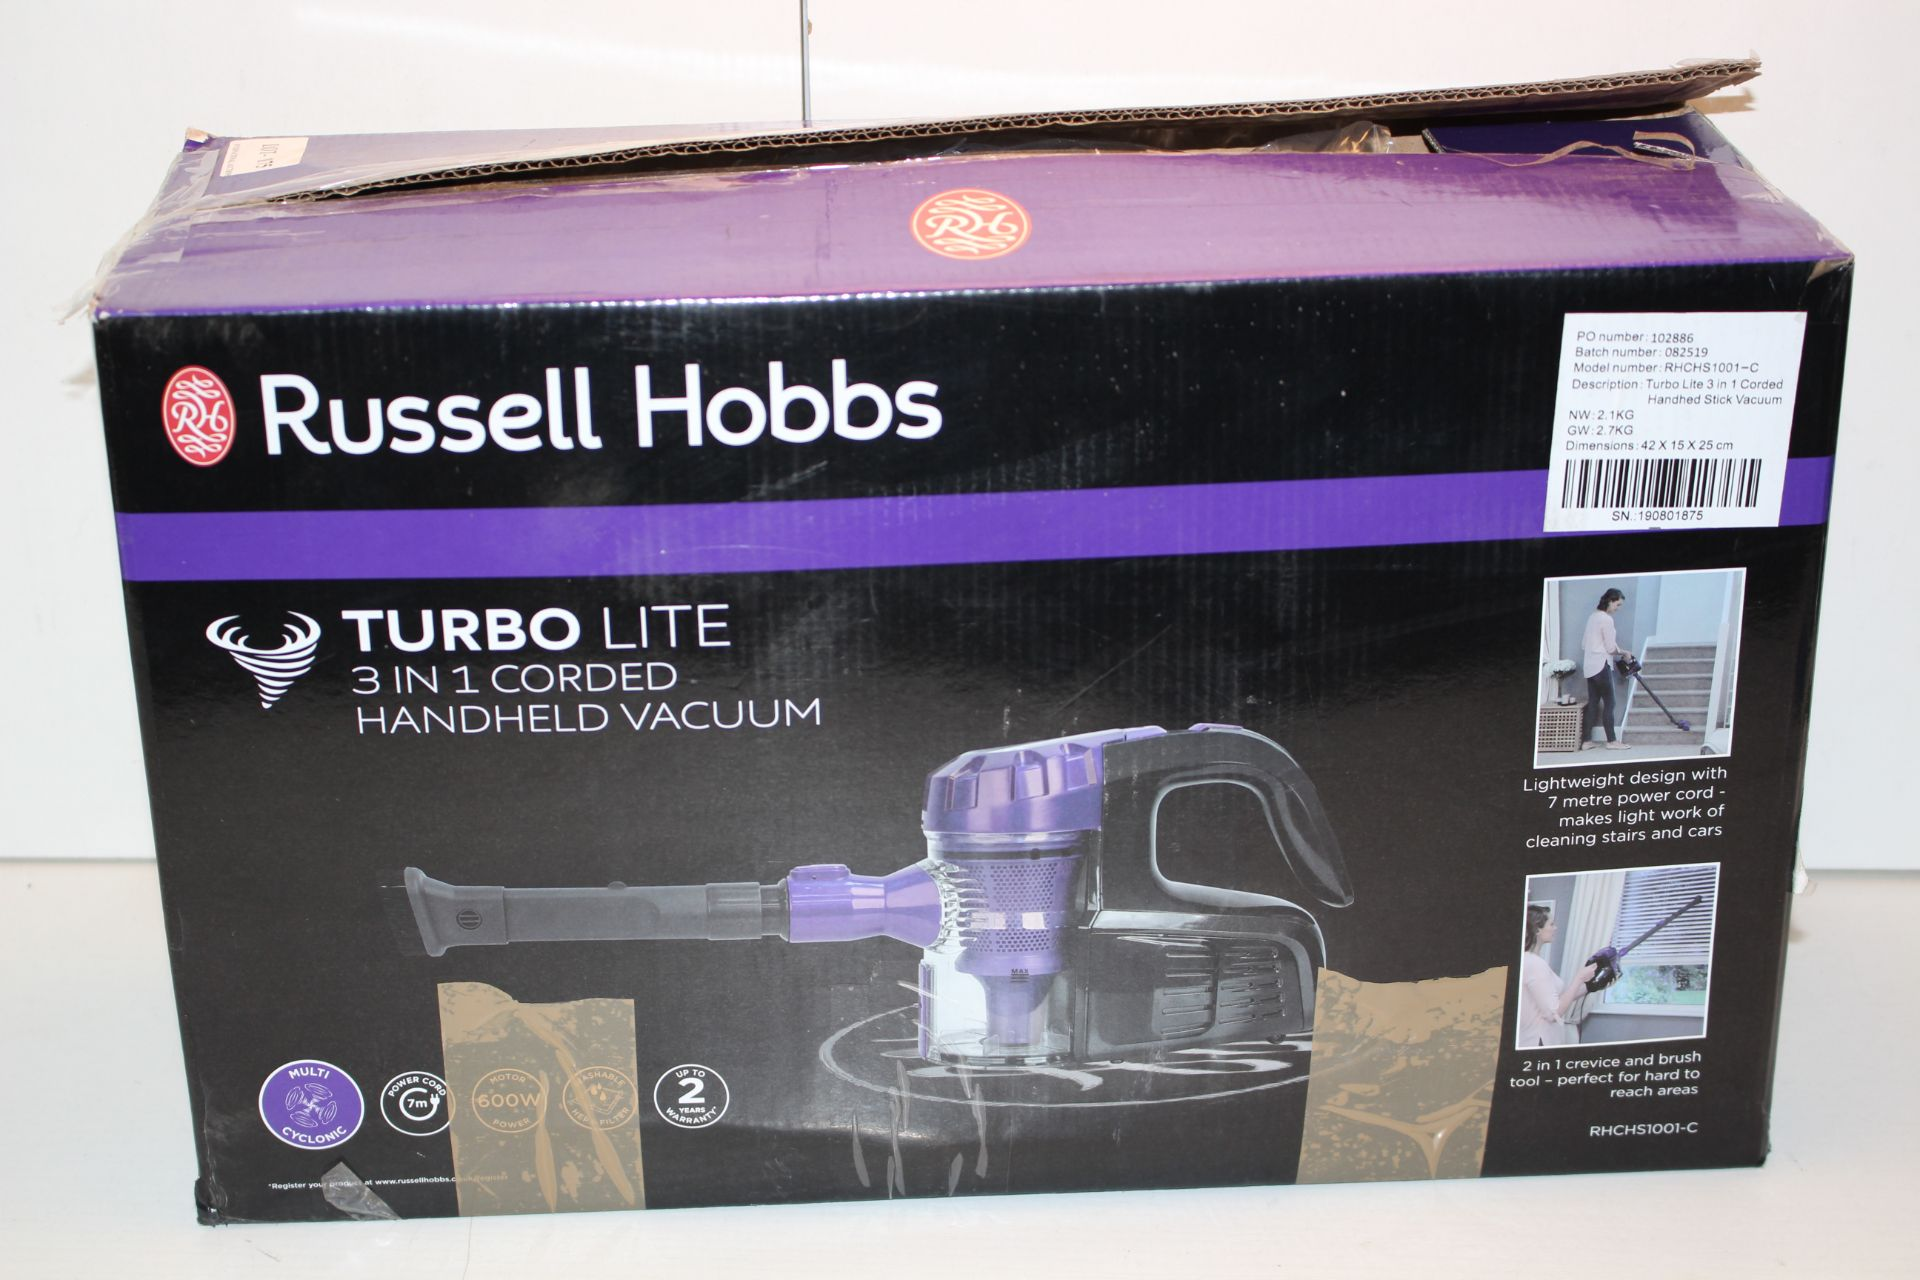 BOXED RUSSELL HOBBS TURBO LITE 3-IN-1 CORDED HANDHELD VACUUM CLEANER RRP £59.99Condition